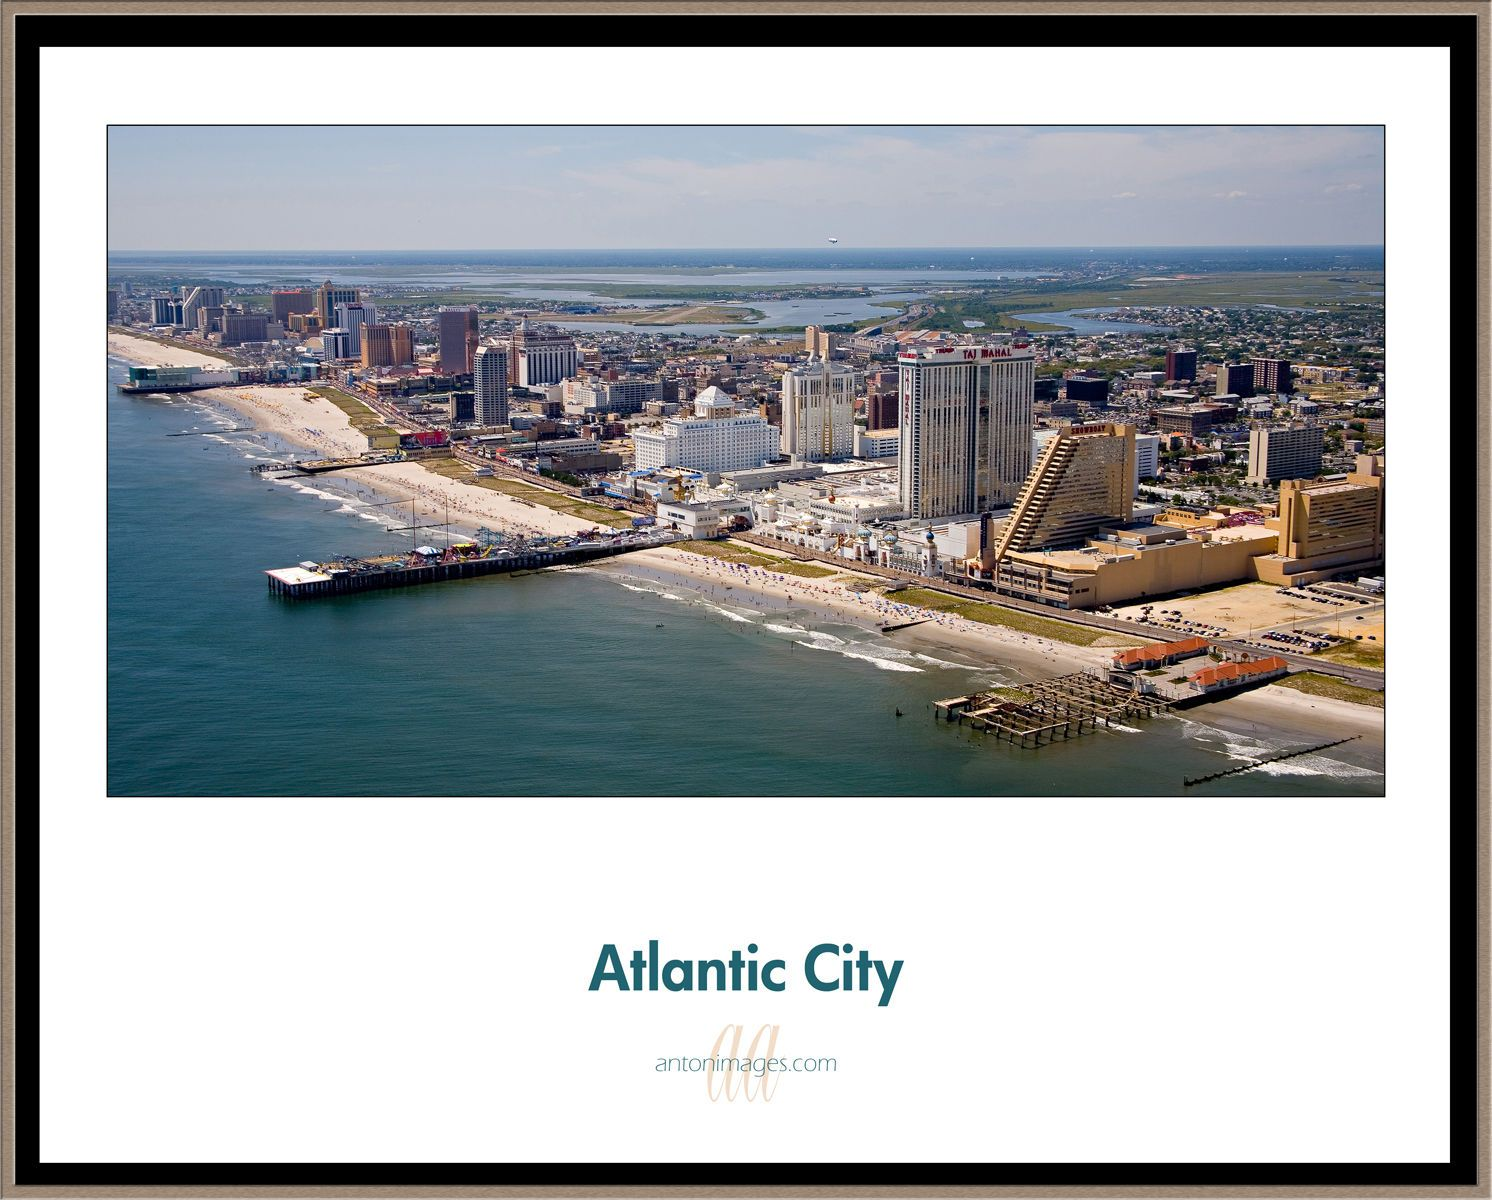 1atlantic_city__.jpg